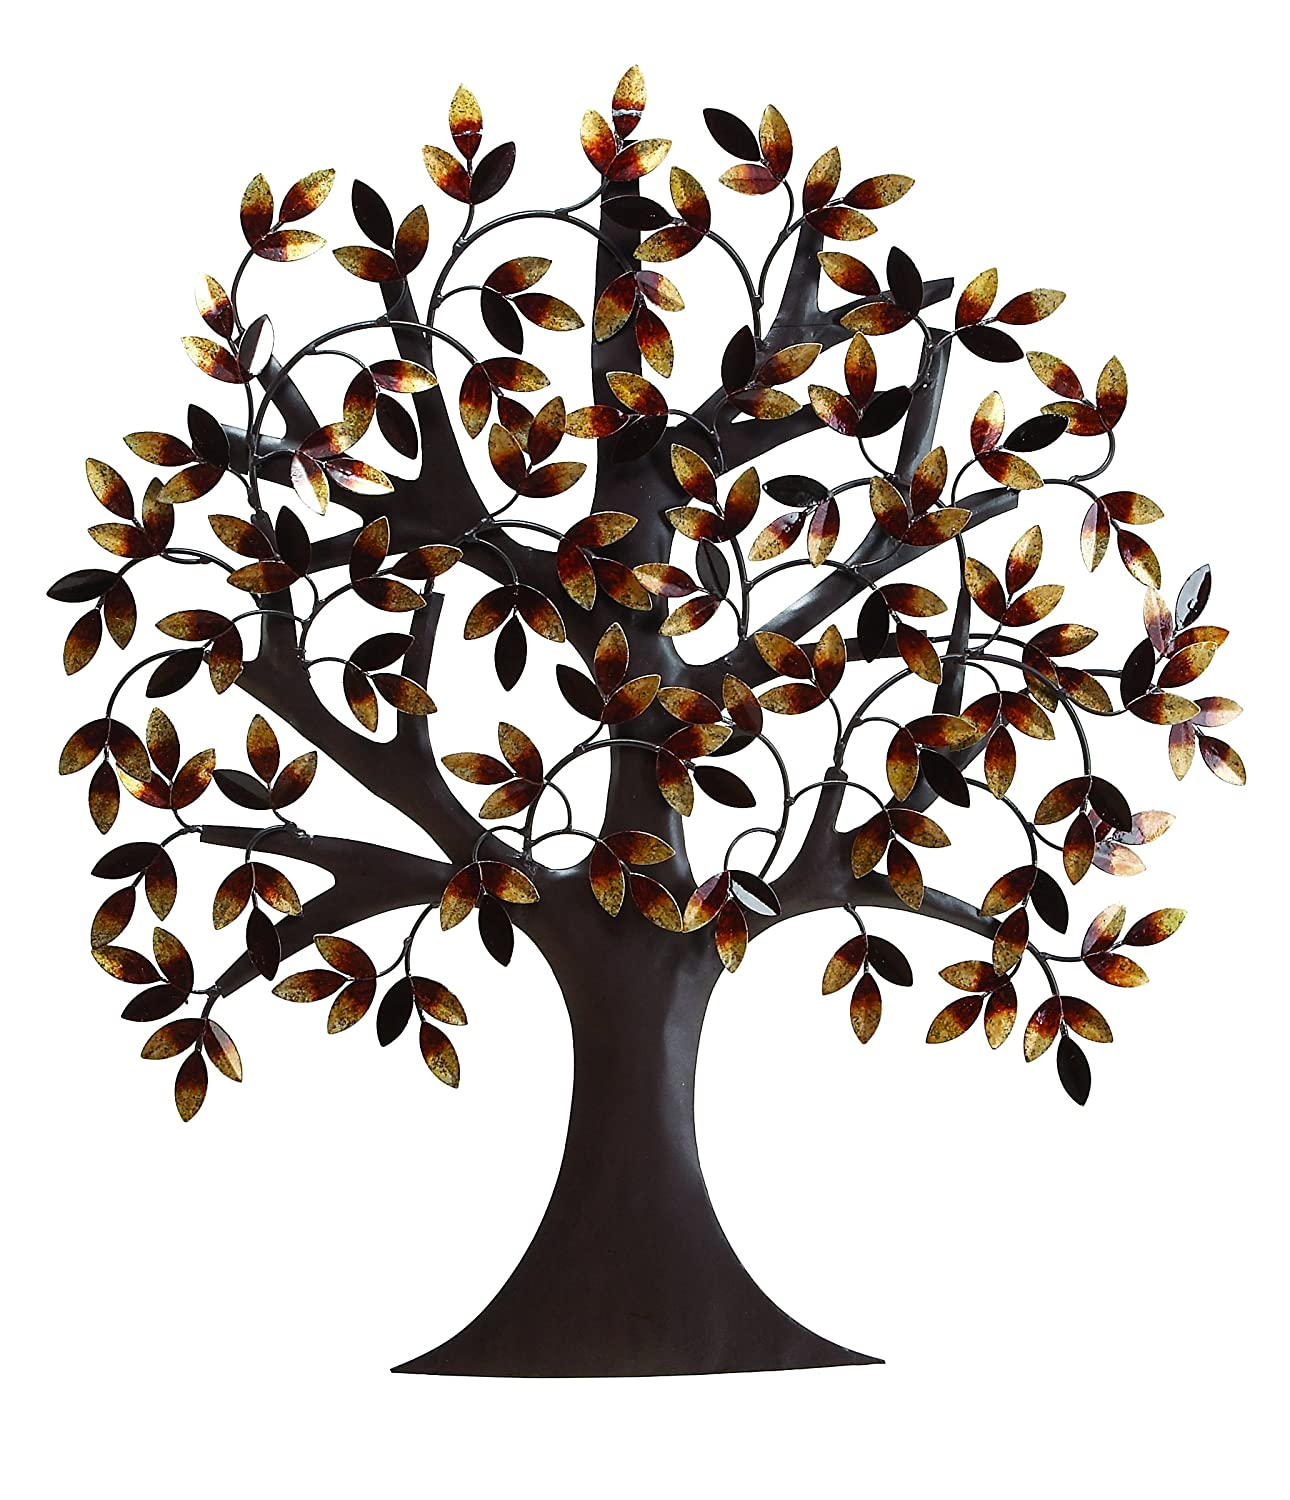 tree of life metal wall art large decoration with branch and leaves